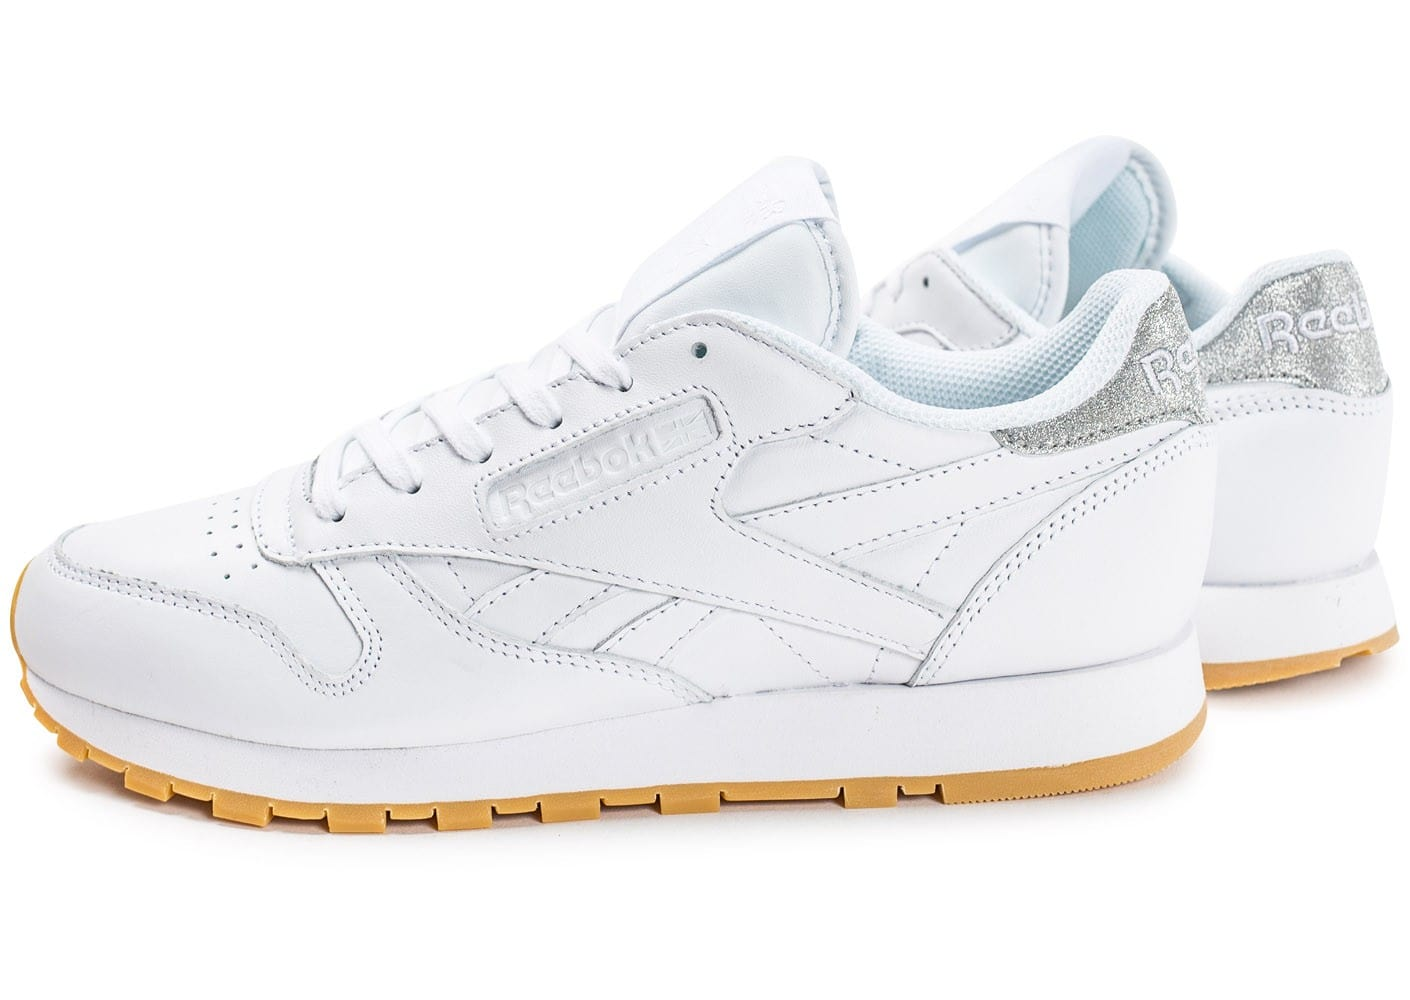 reebok classic leather diamond gum blanche chaussures femme chausport. Black Bedroom Furniture Sets. Home Design Ideas